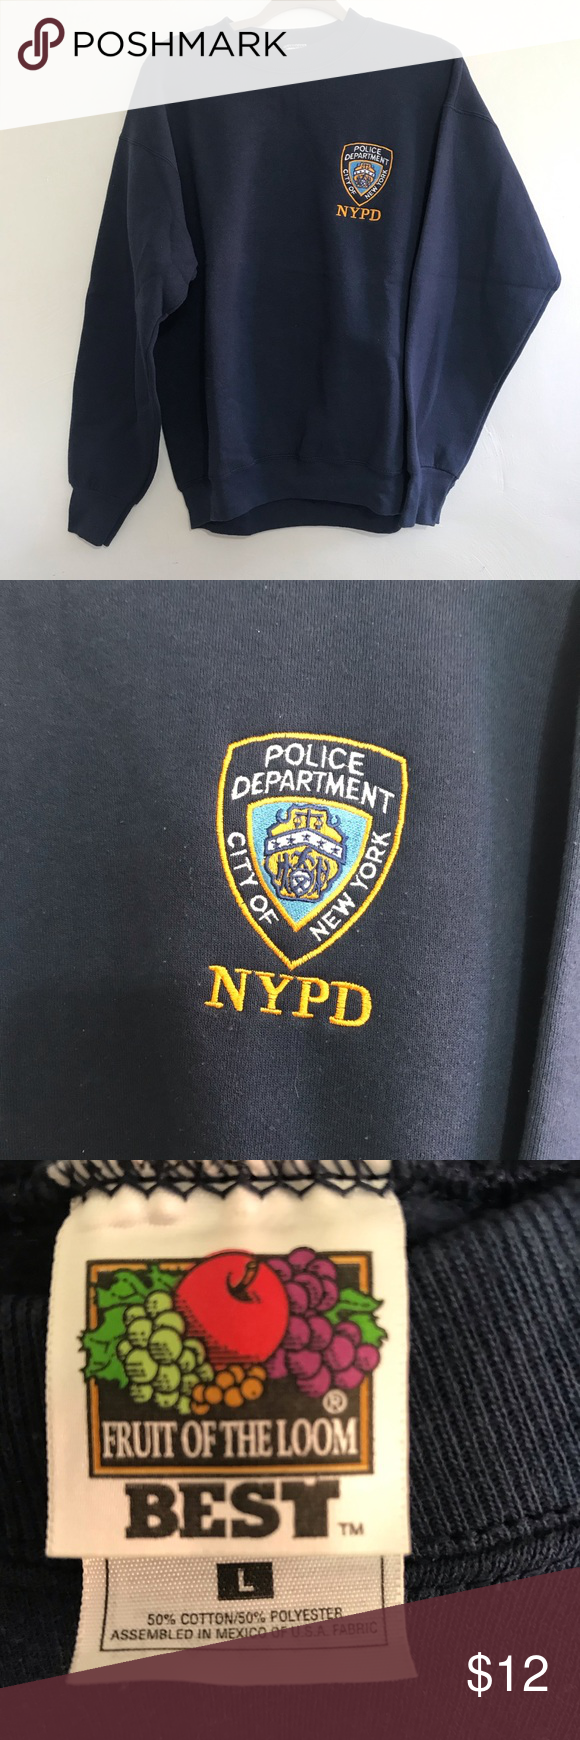 71e55ad3 Vintage NYPD sweatshirt Vintage NYPD New York Police Department sweatshirt  With embroidered logo Shirts Sweatshirts & Hoodies